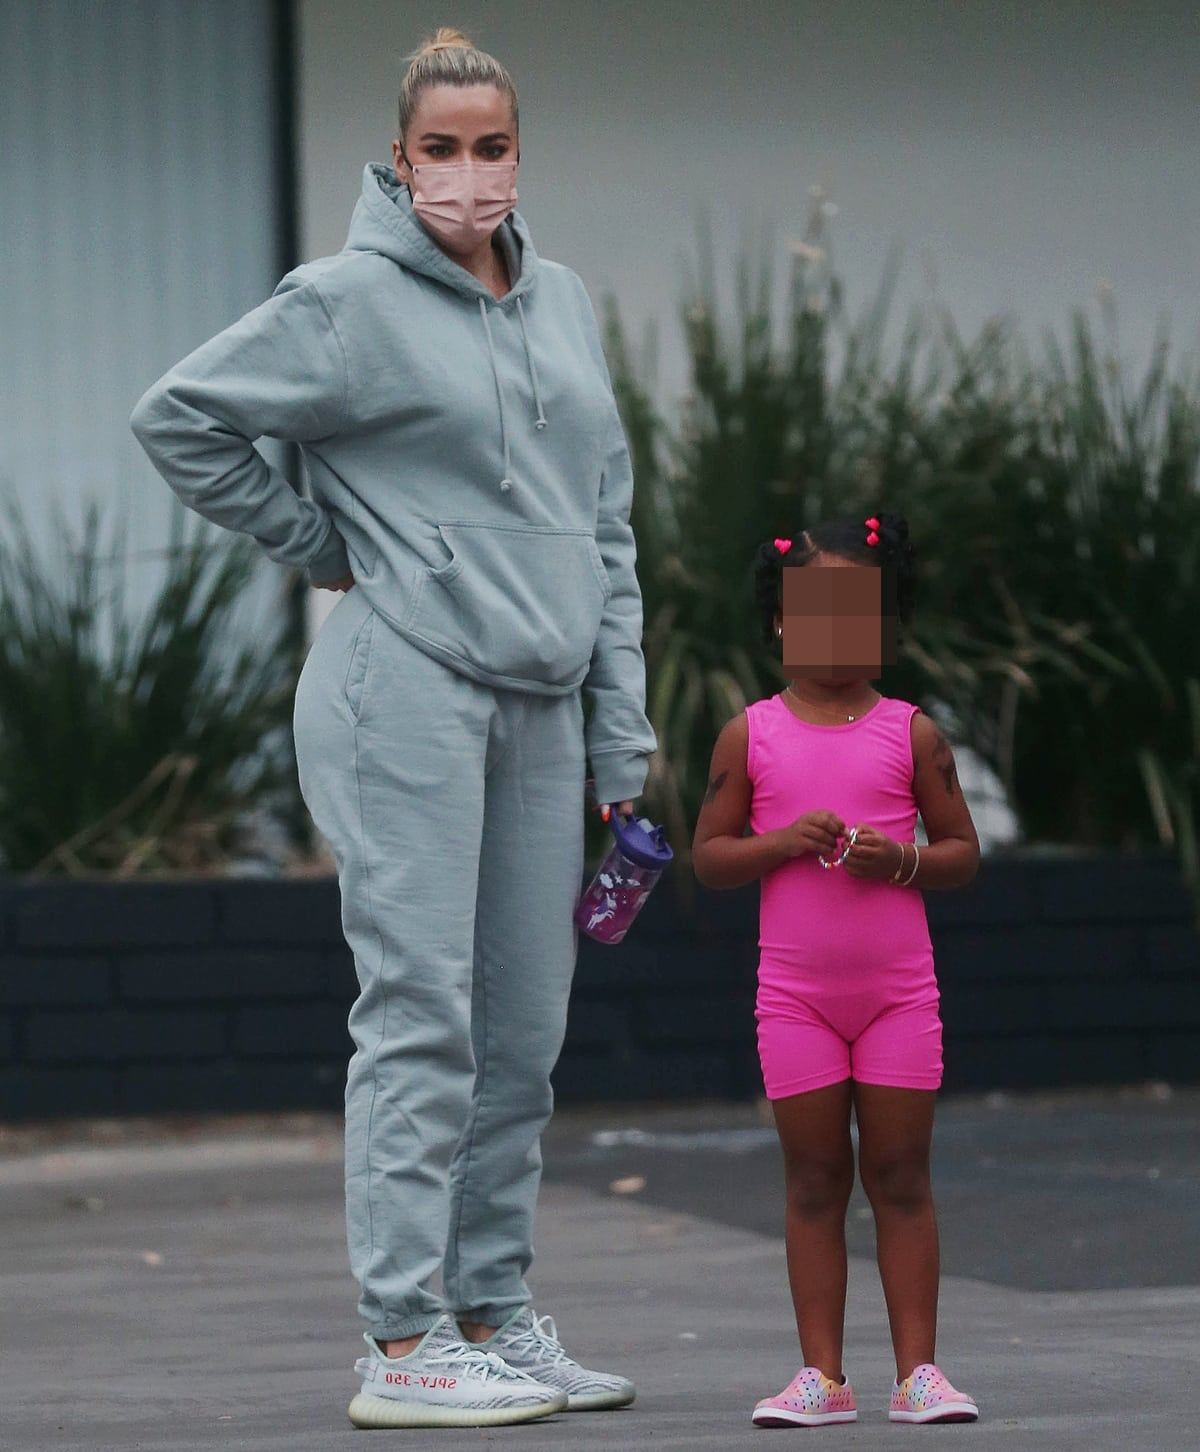 Khloe Kardashian supports Kanye West's footwear collaboration in grey sweatpants with her daughter True Thompson